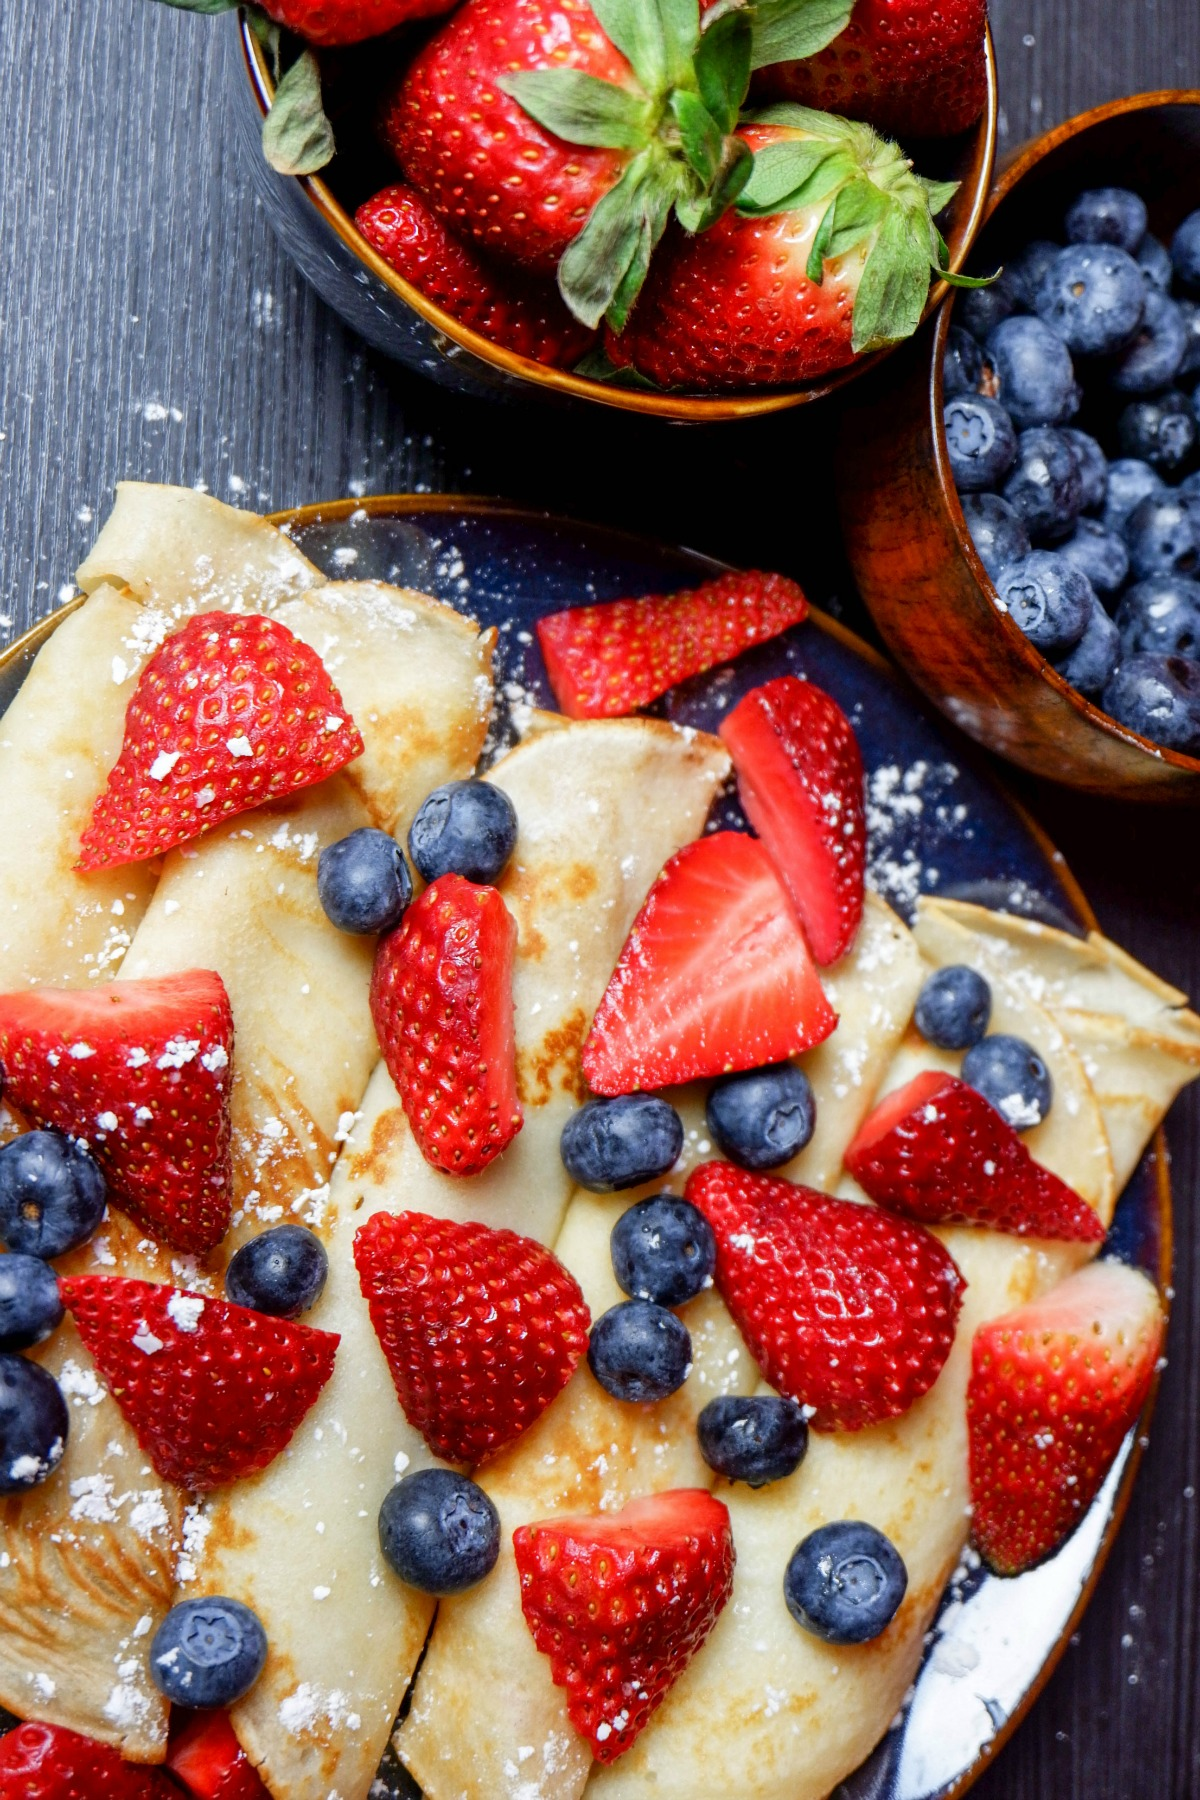 Crepes are delicious to serve for dessert, breakfast or special occasions.